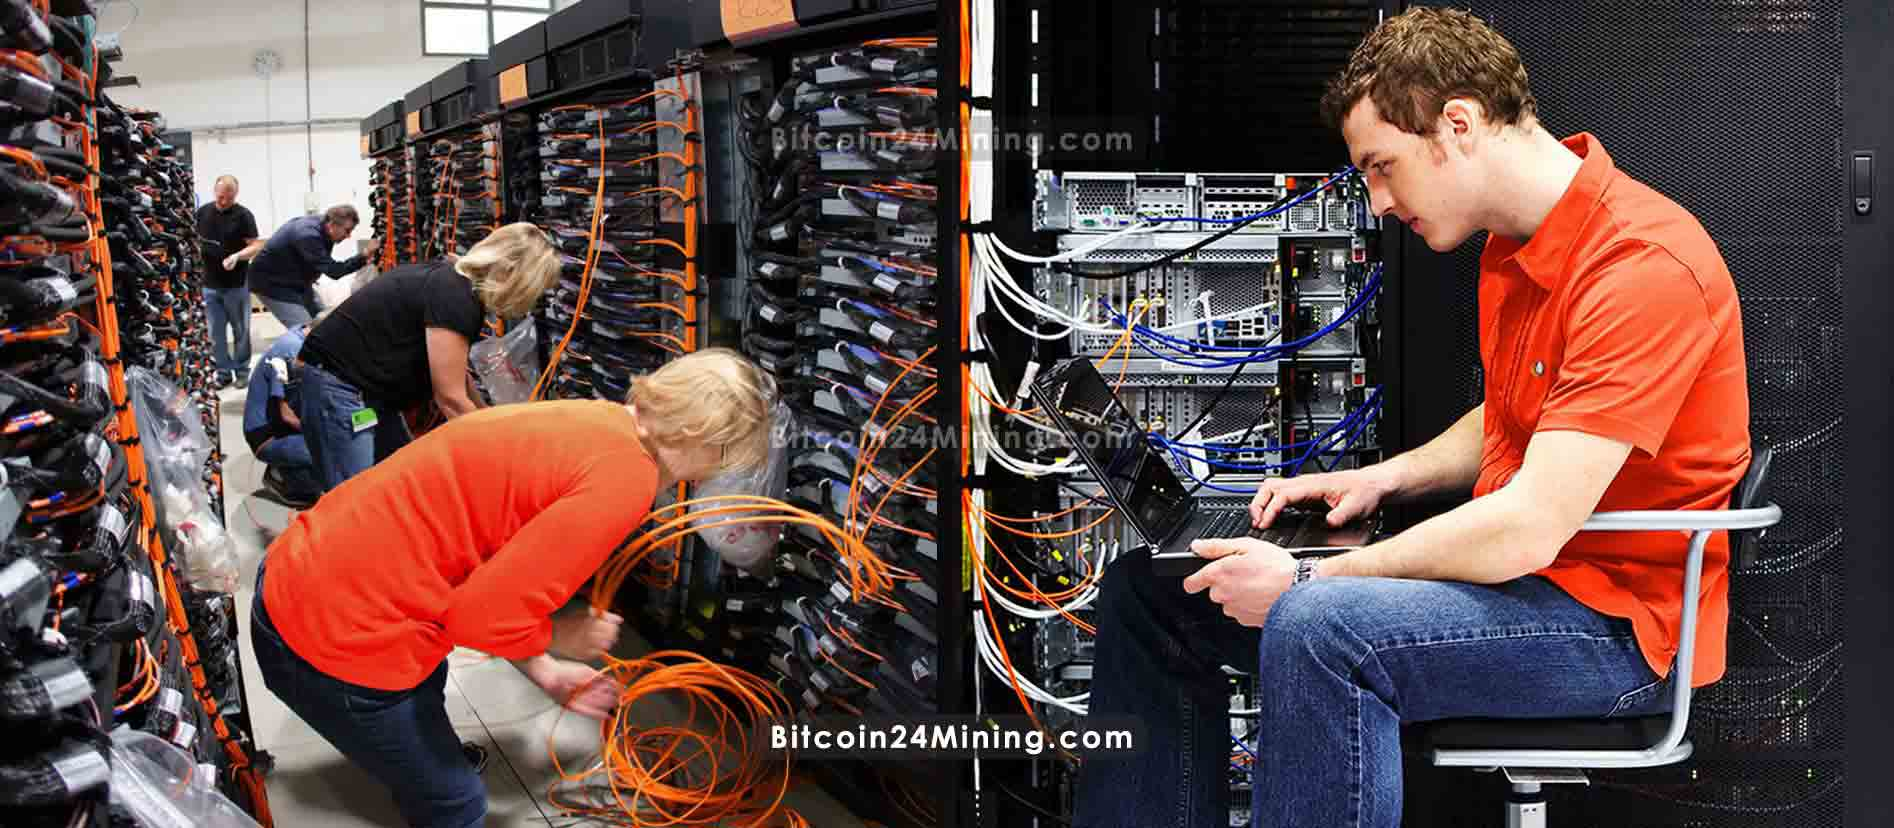 Bitcoin24mining Announces Extra Mining For Free For Its New Members Now